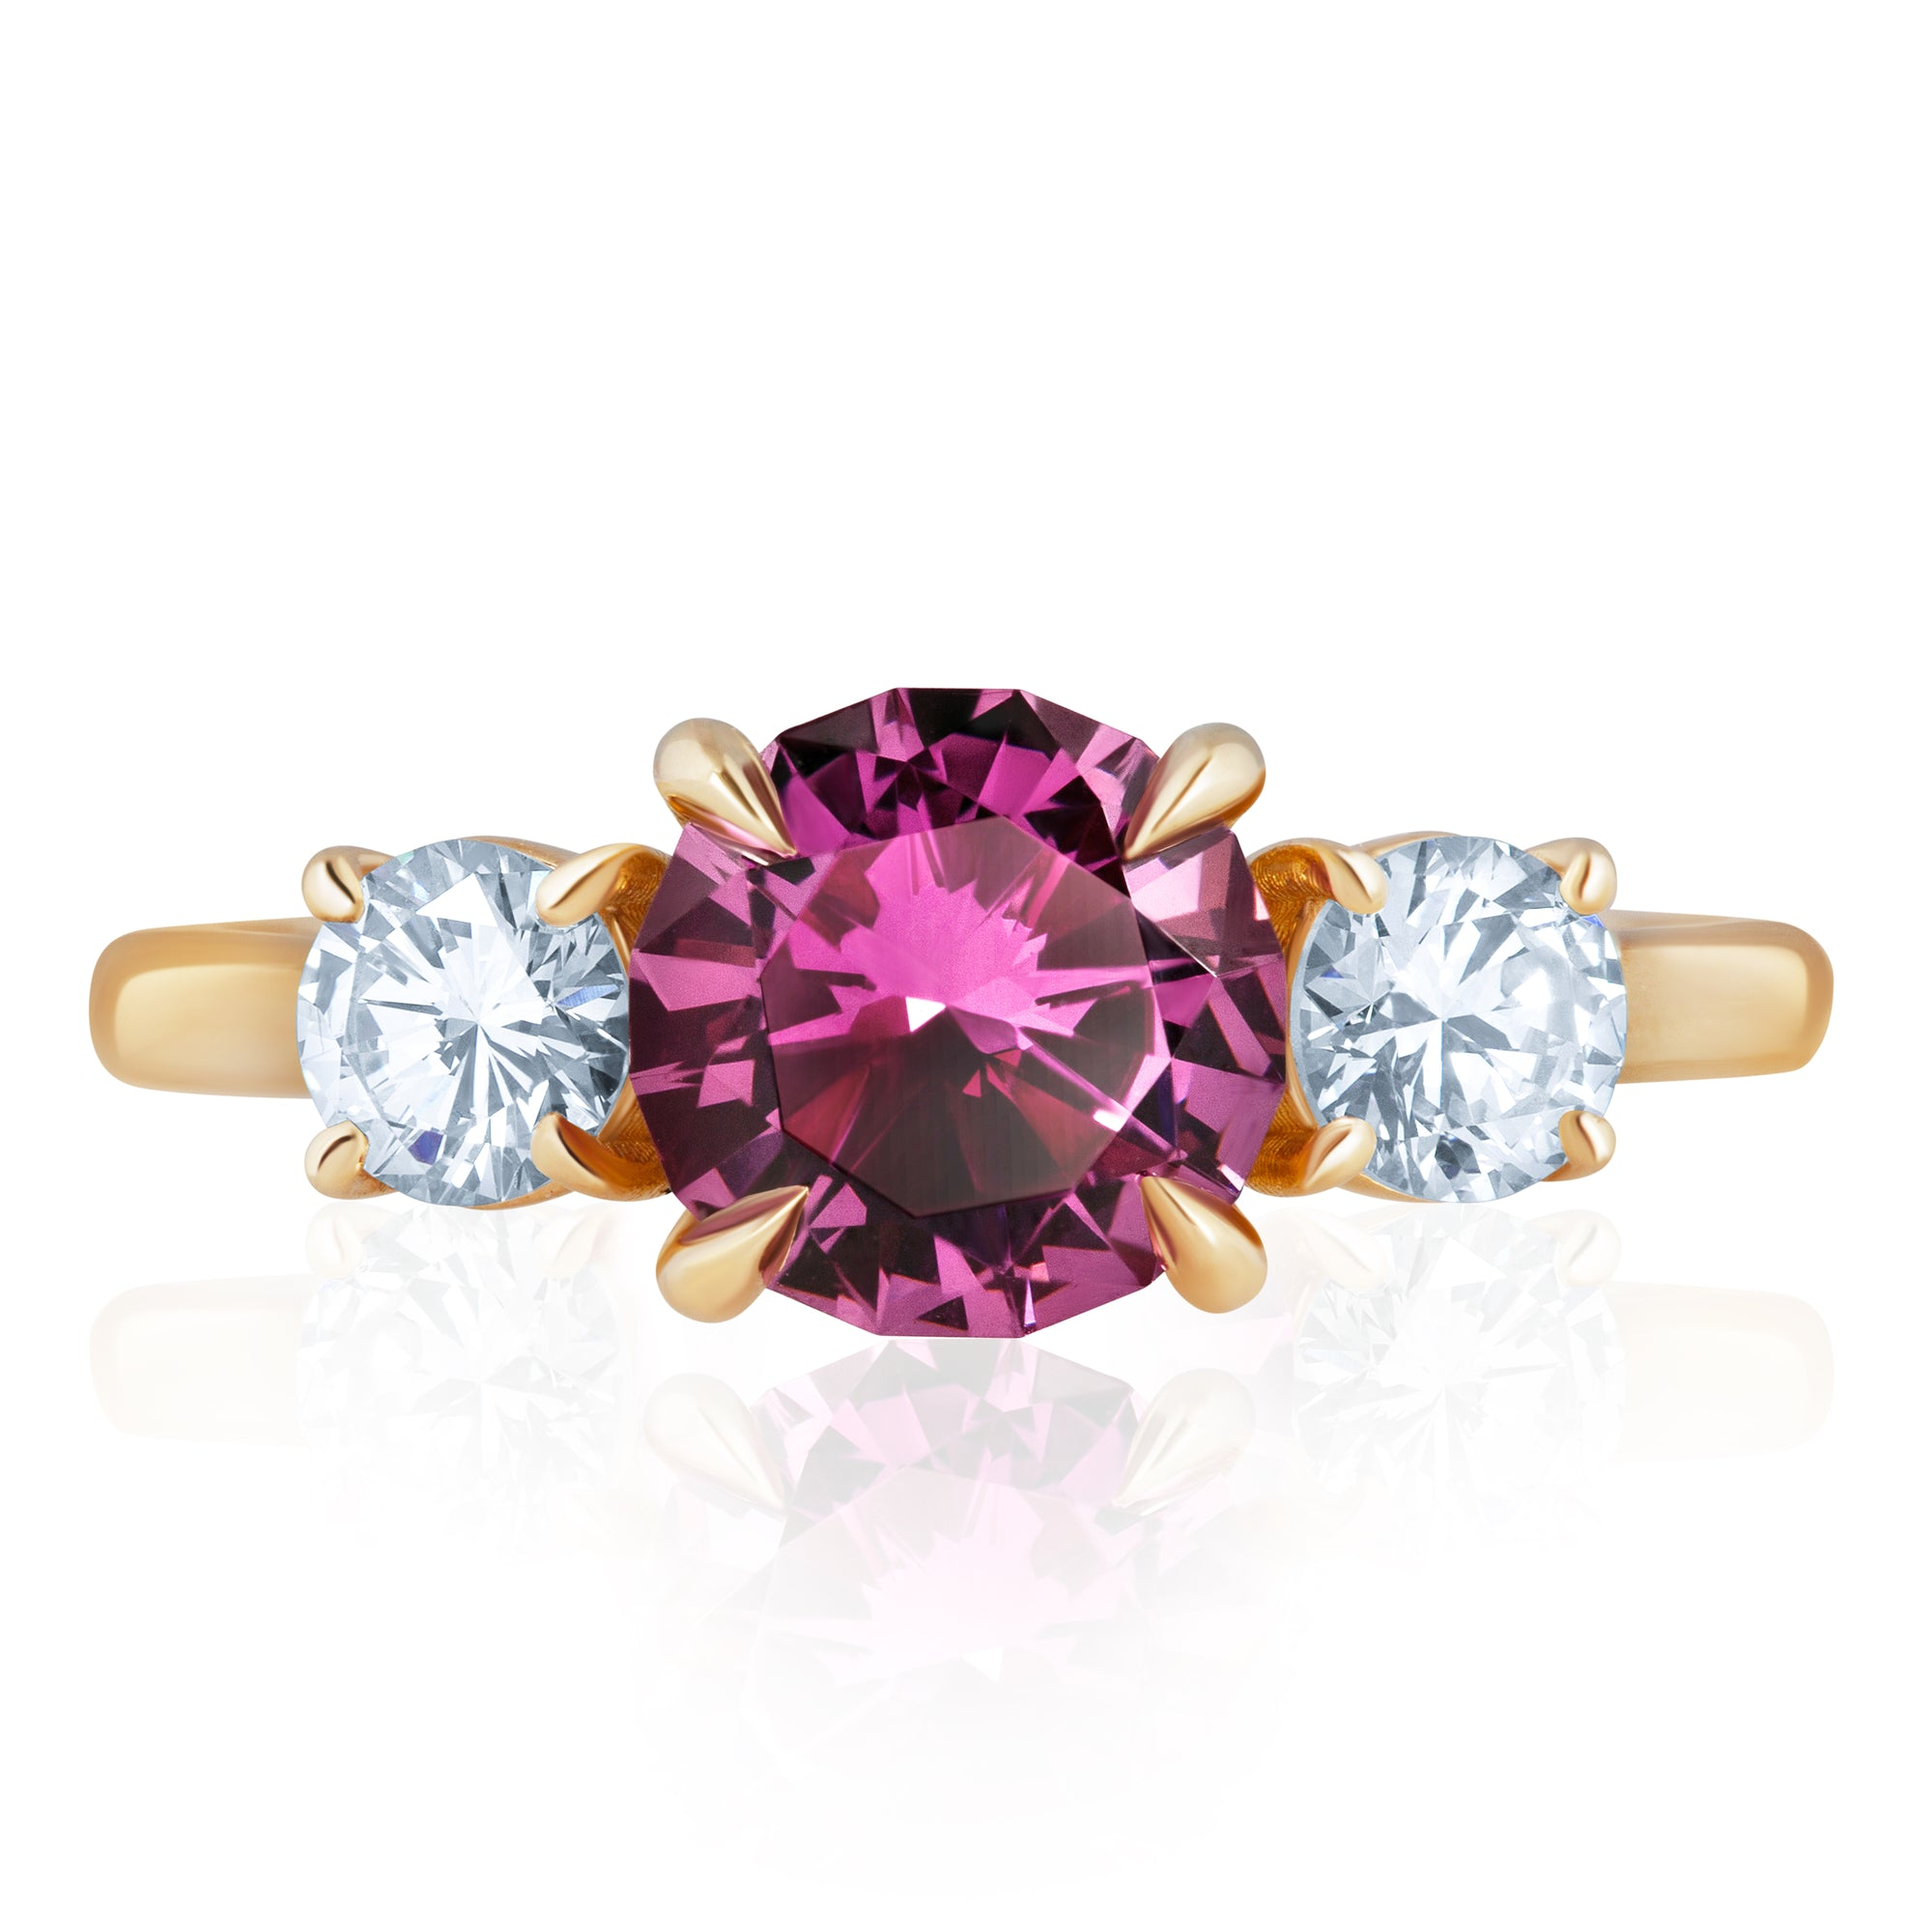 THREE STONE TOURMALINE DIAMOND RING 2.11cttw